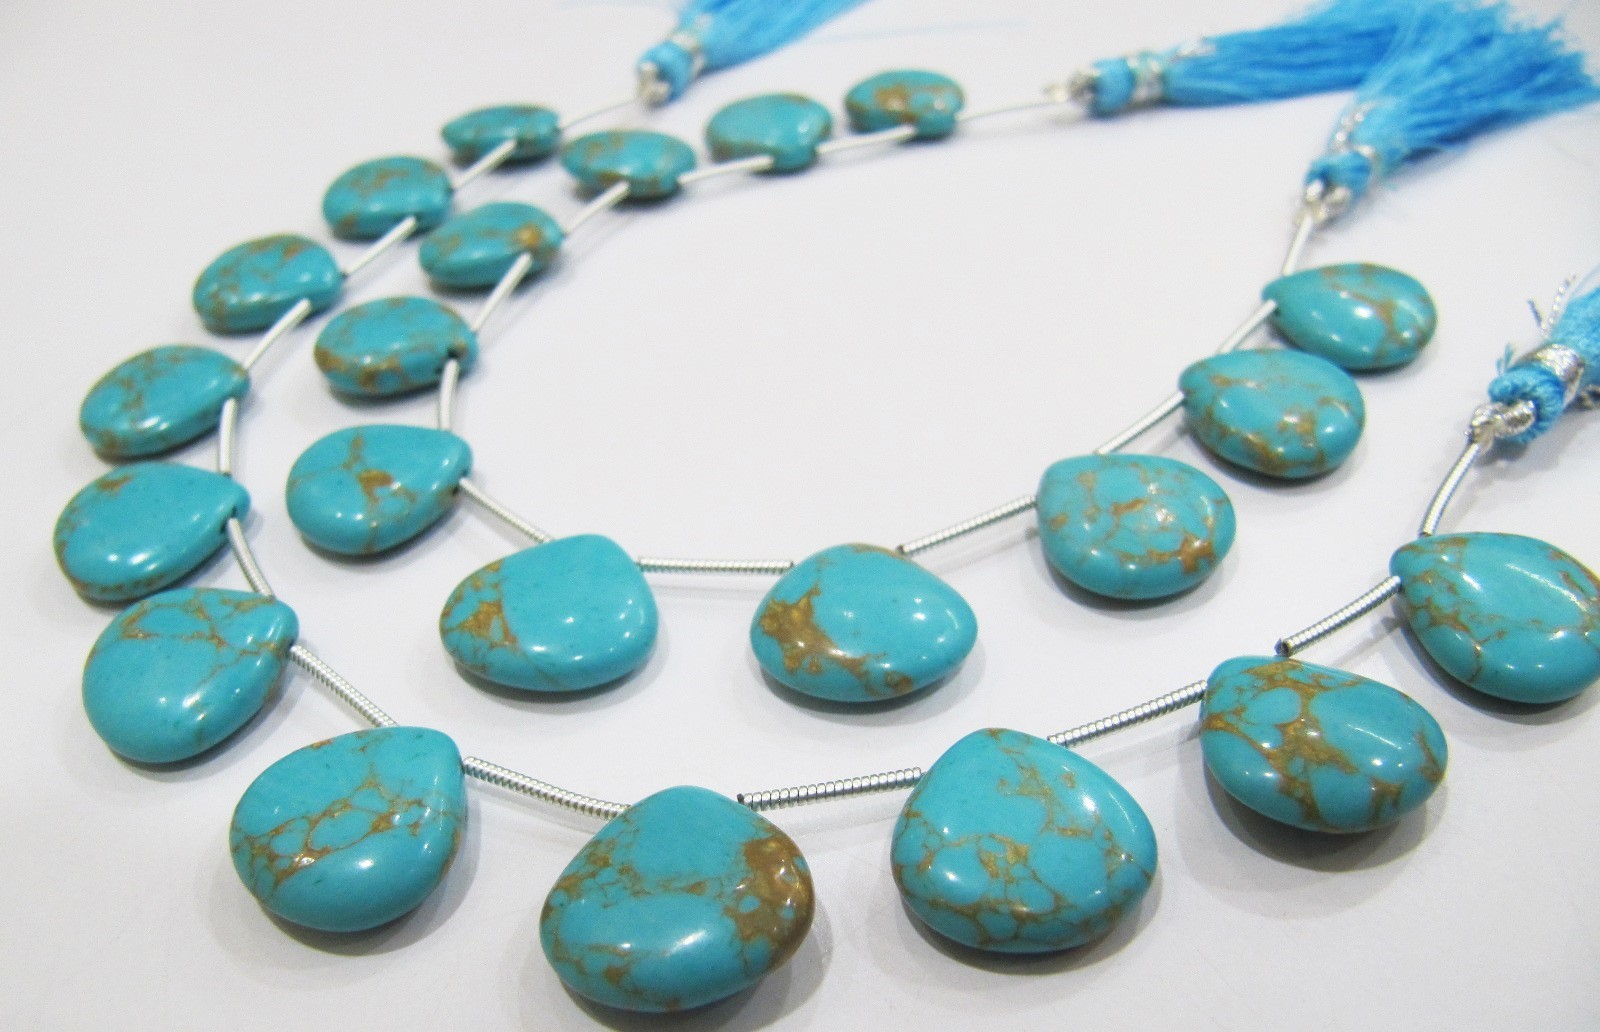 AAA Quality Blue Copar Turquoise Smooth Plain Beads .